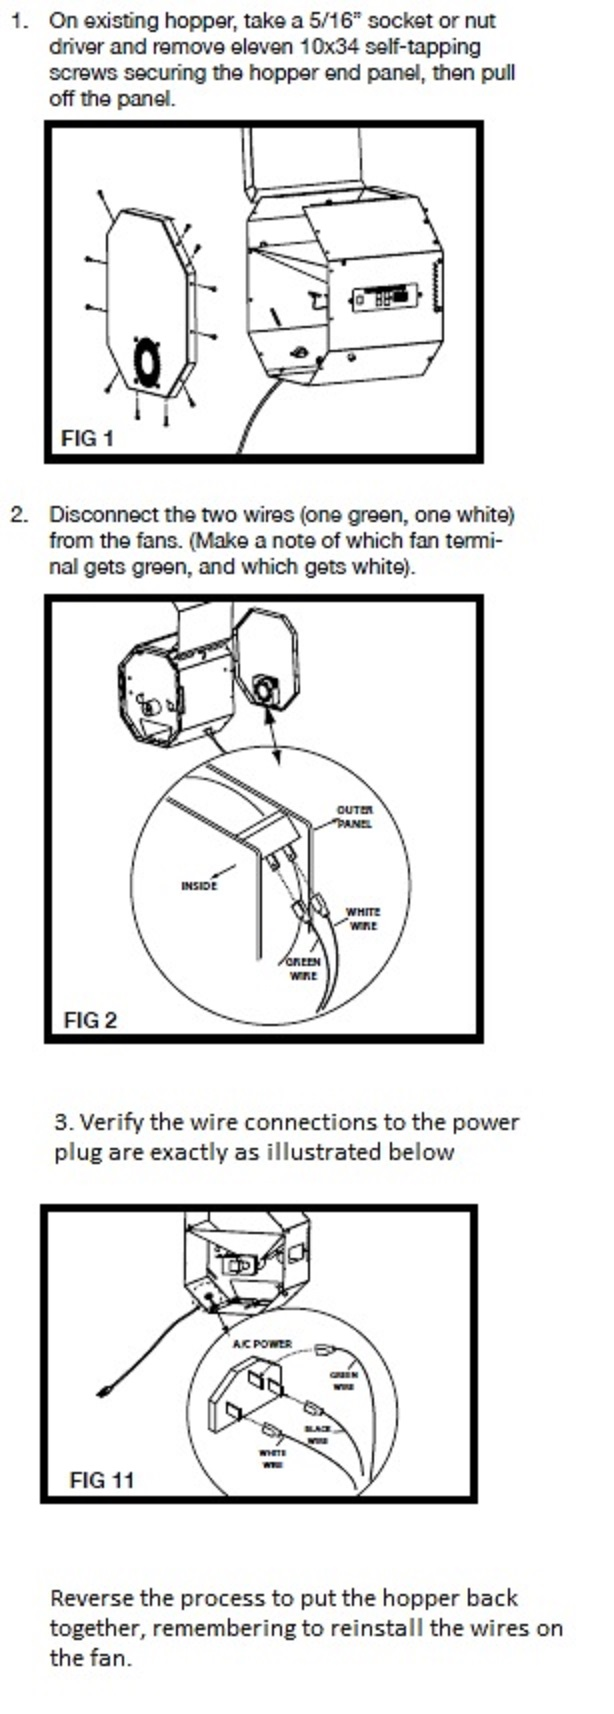 check power connections.jpg